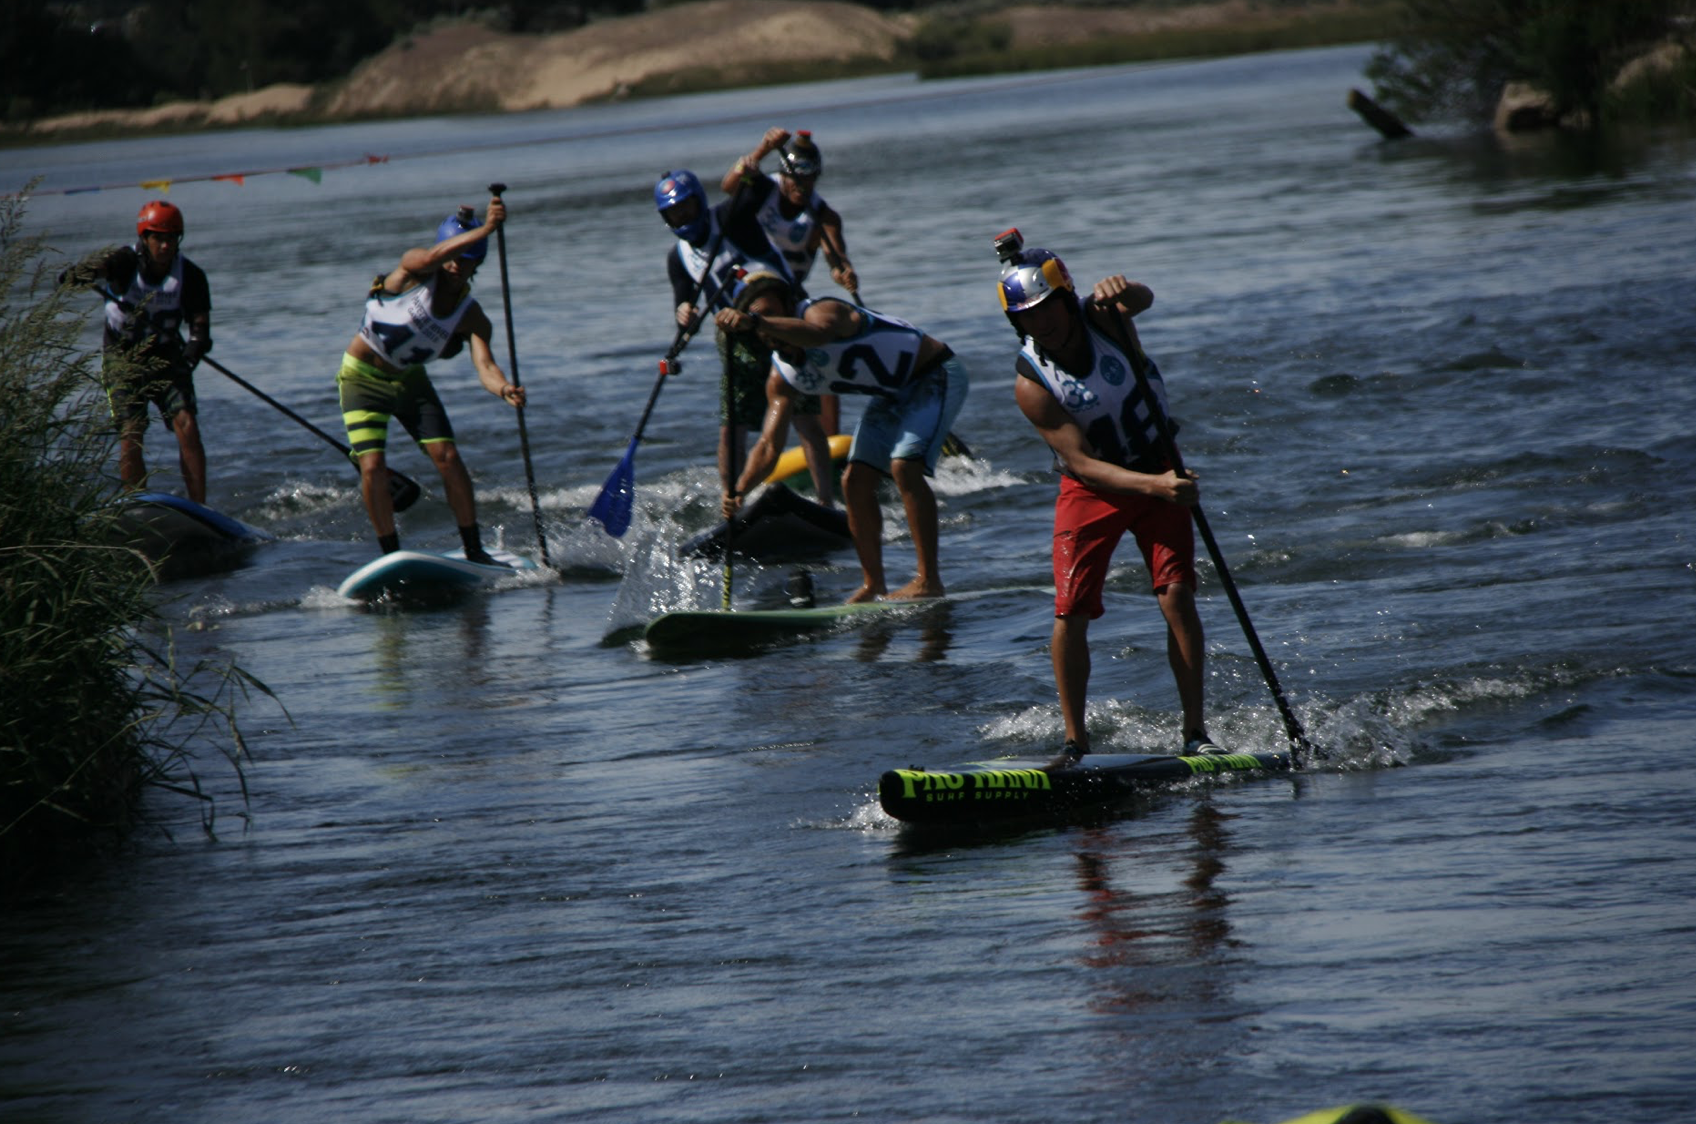 Paddling on the Pau Hana Surf Supply racing board in Idaho